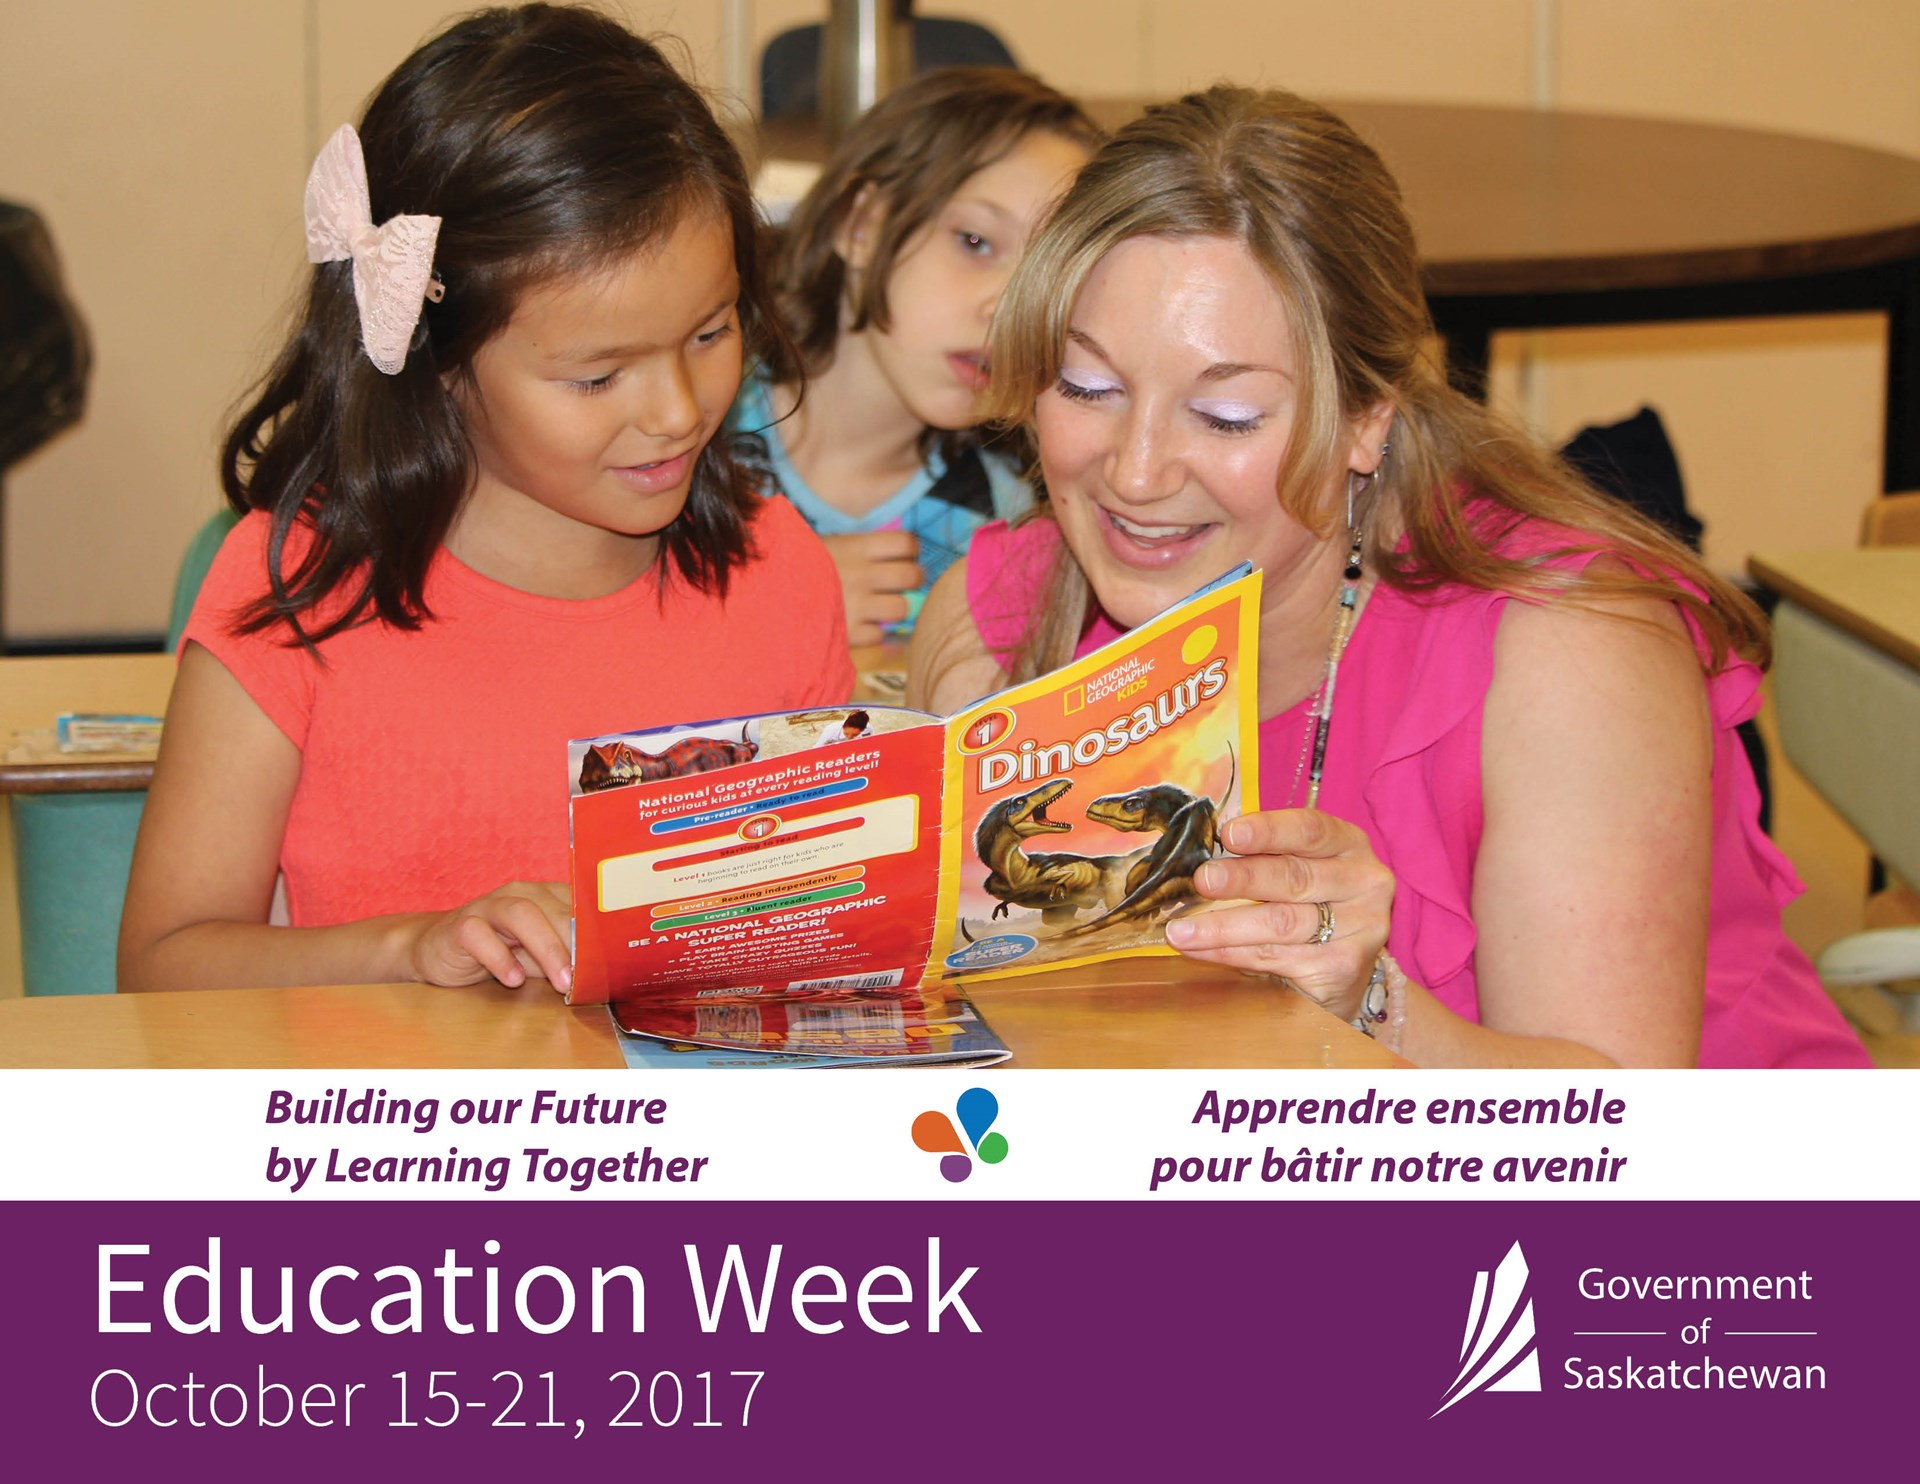 education-week-2017-SD Display+Web+Twitter.jpg